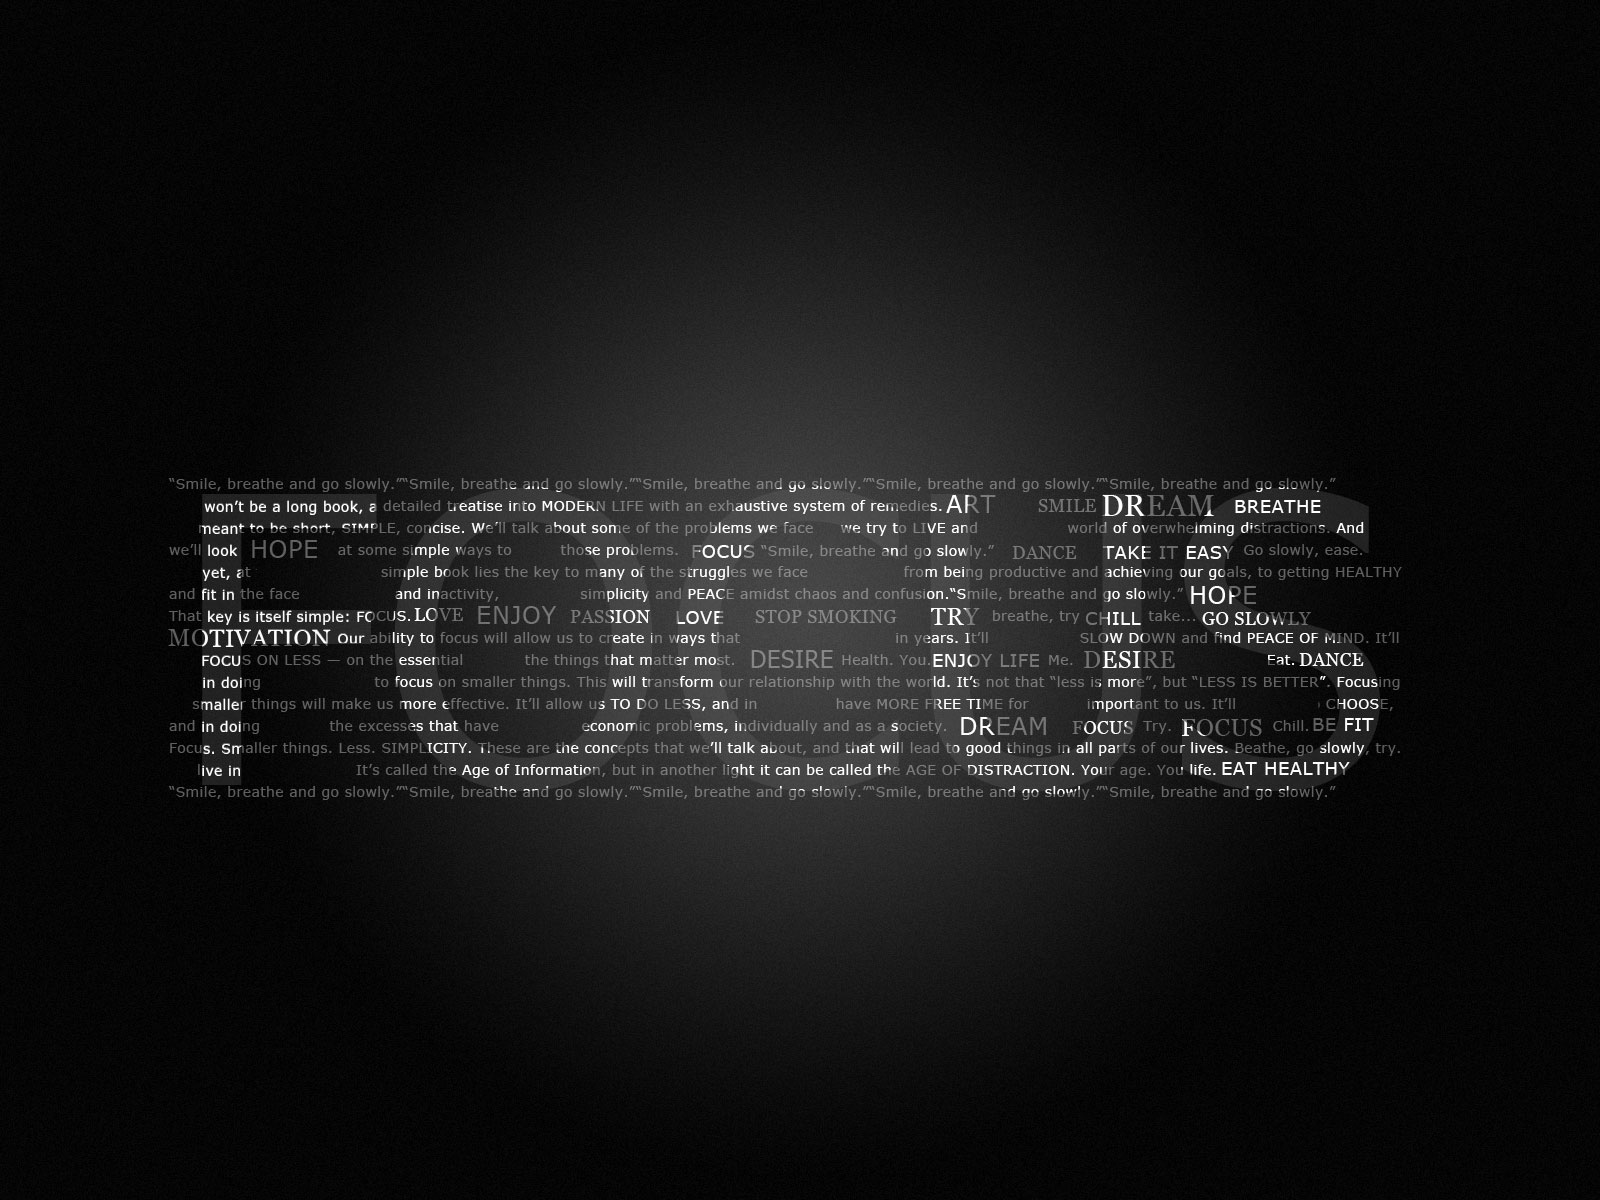 motivational wallpaper focus - hd desktop wallpapers | 4k hd